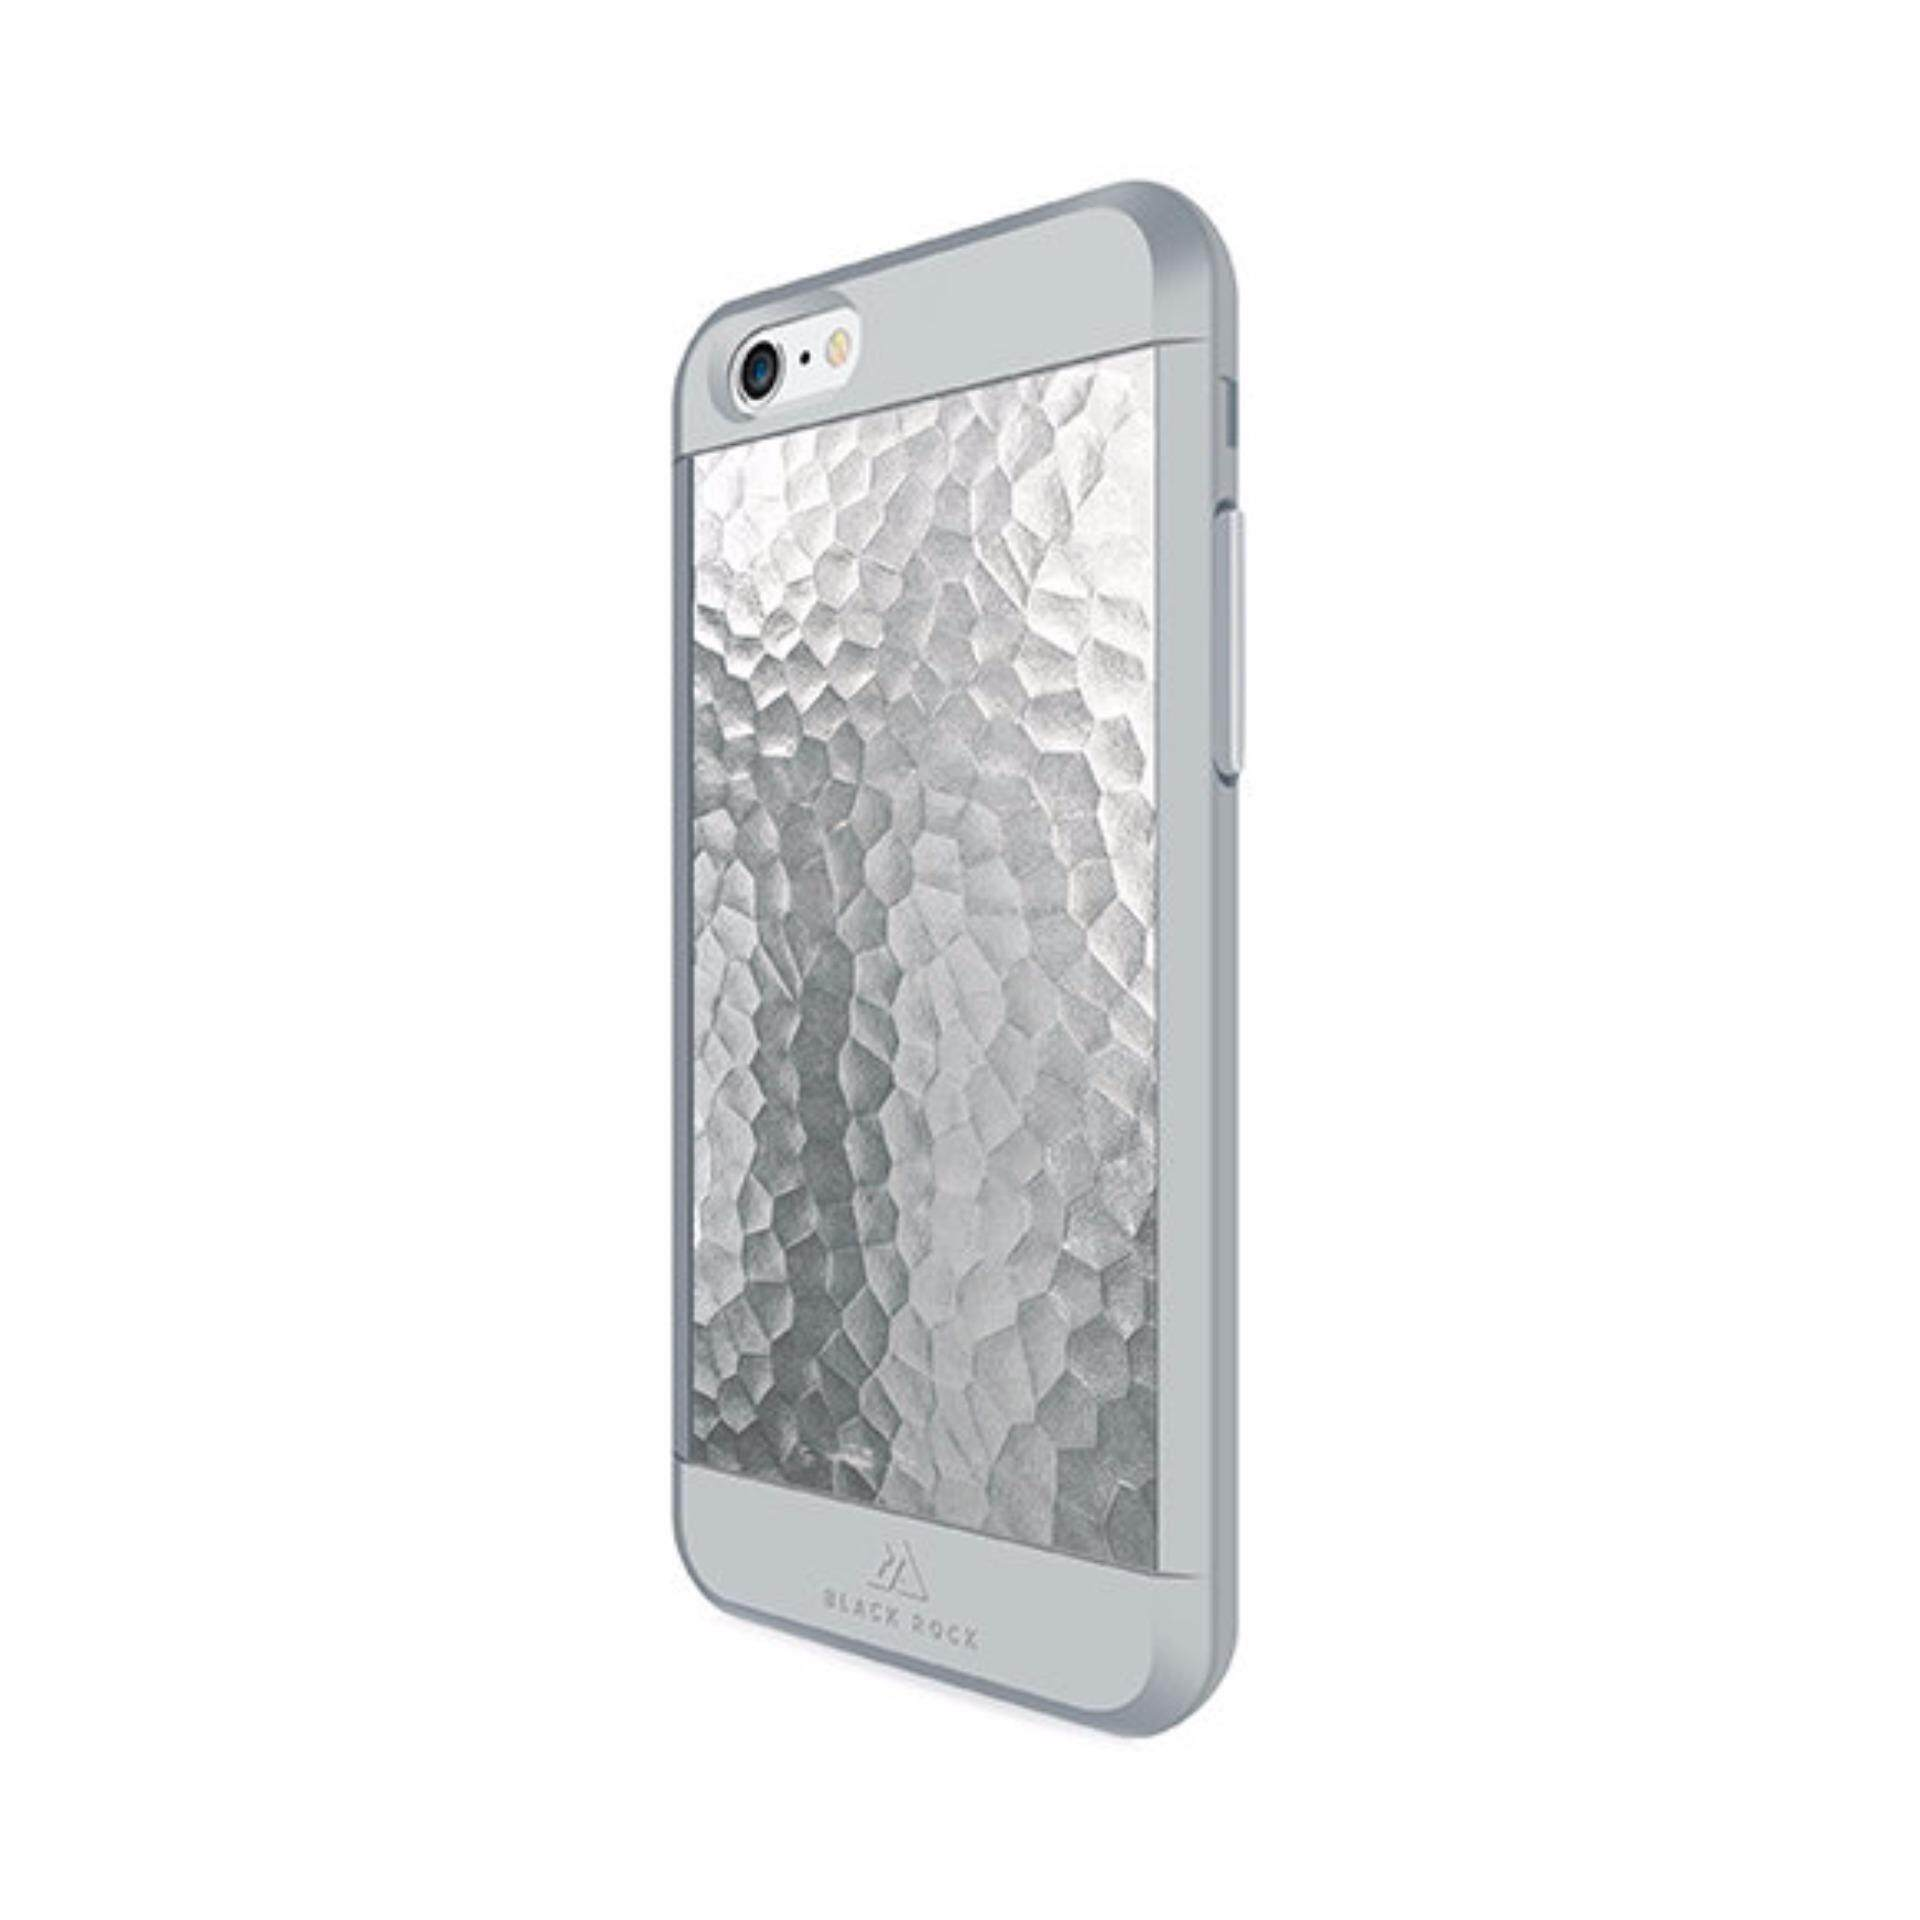 Black Rock Hammered Material Cover เคส iPhone 6/6S - Silver